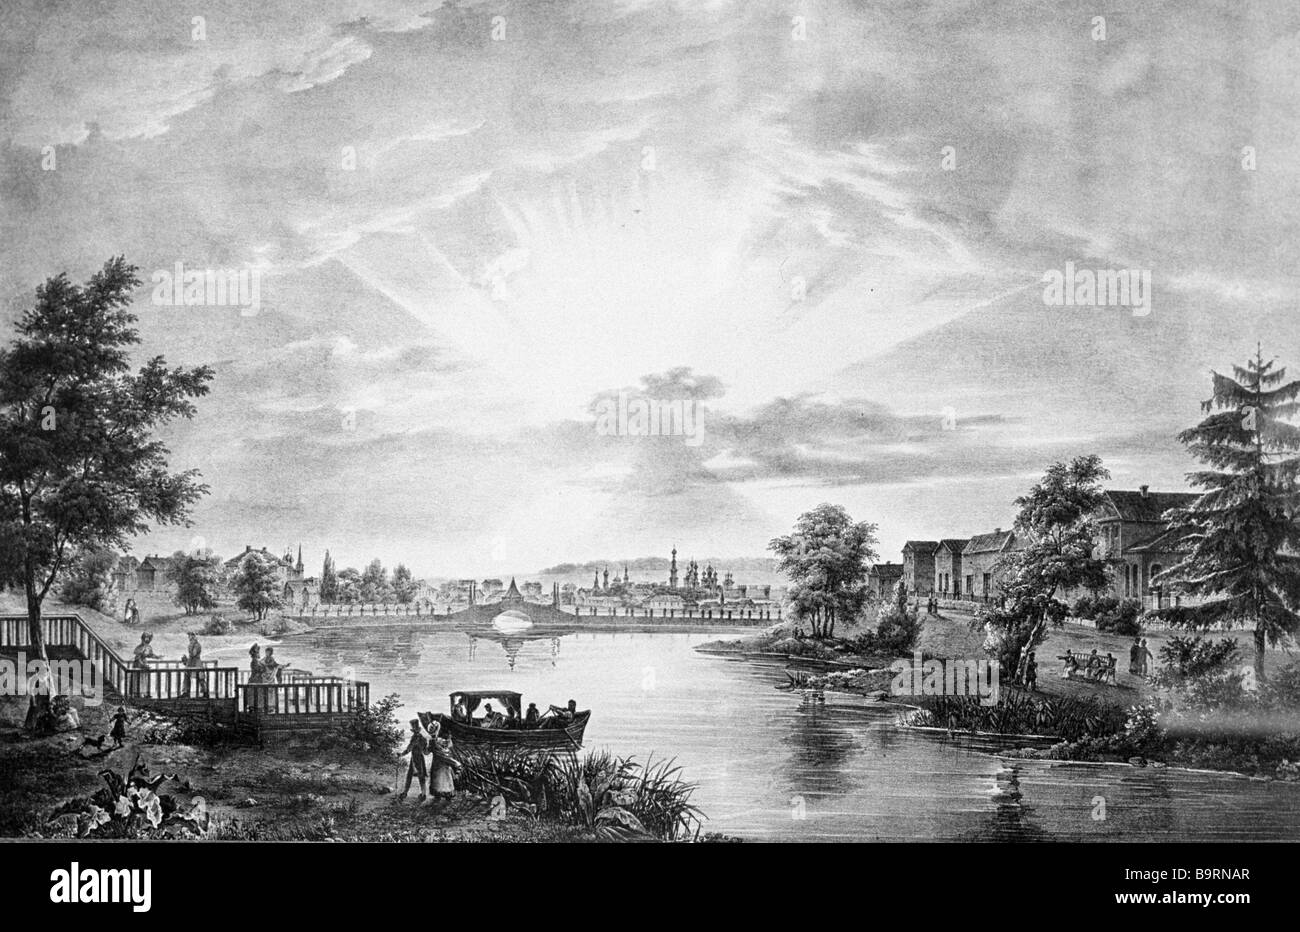 Moscow Presnya ponds lithography by Antoine Cadol 1825 Reproduction - Stock Image